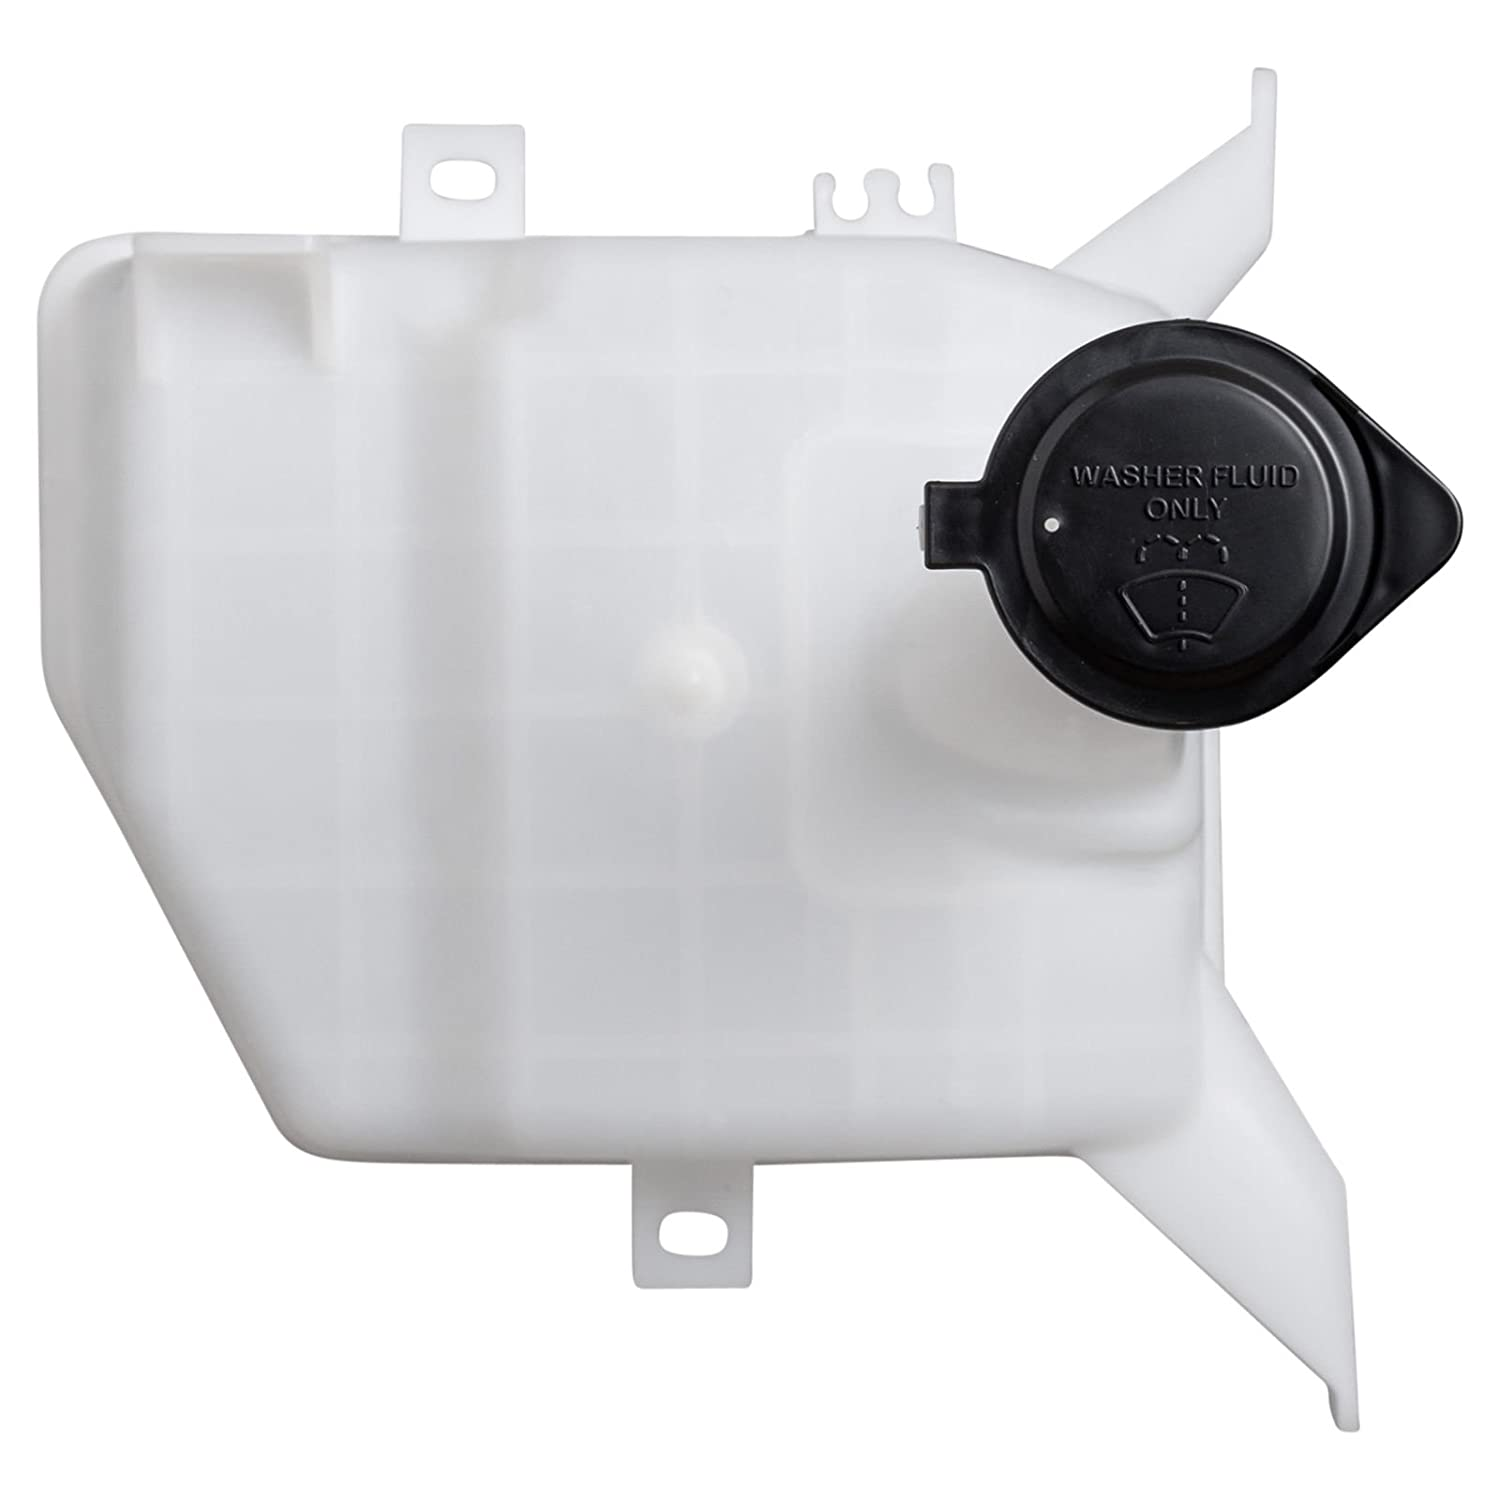 Toyota Camry: Washer fluid